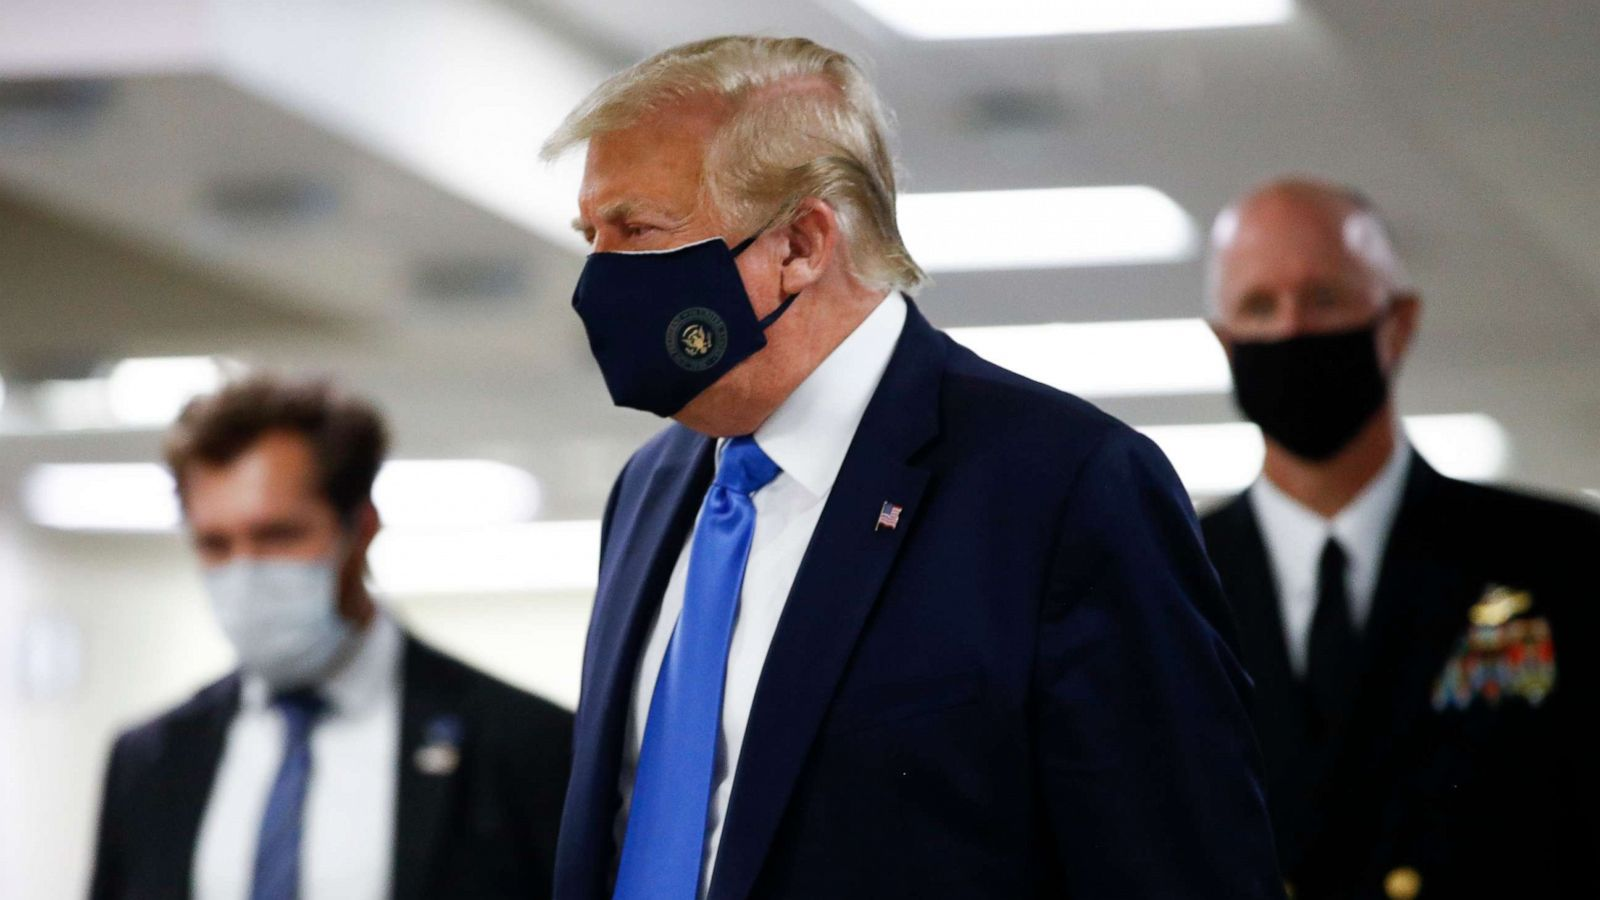 Trump wears mask in public for 1st time on visit to Walter Reed ...